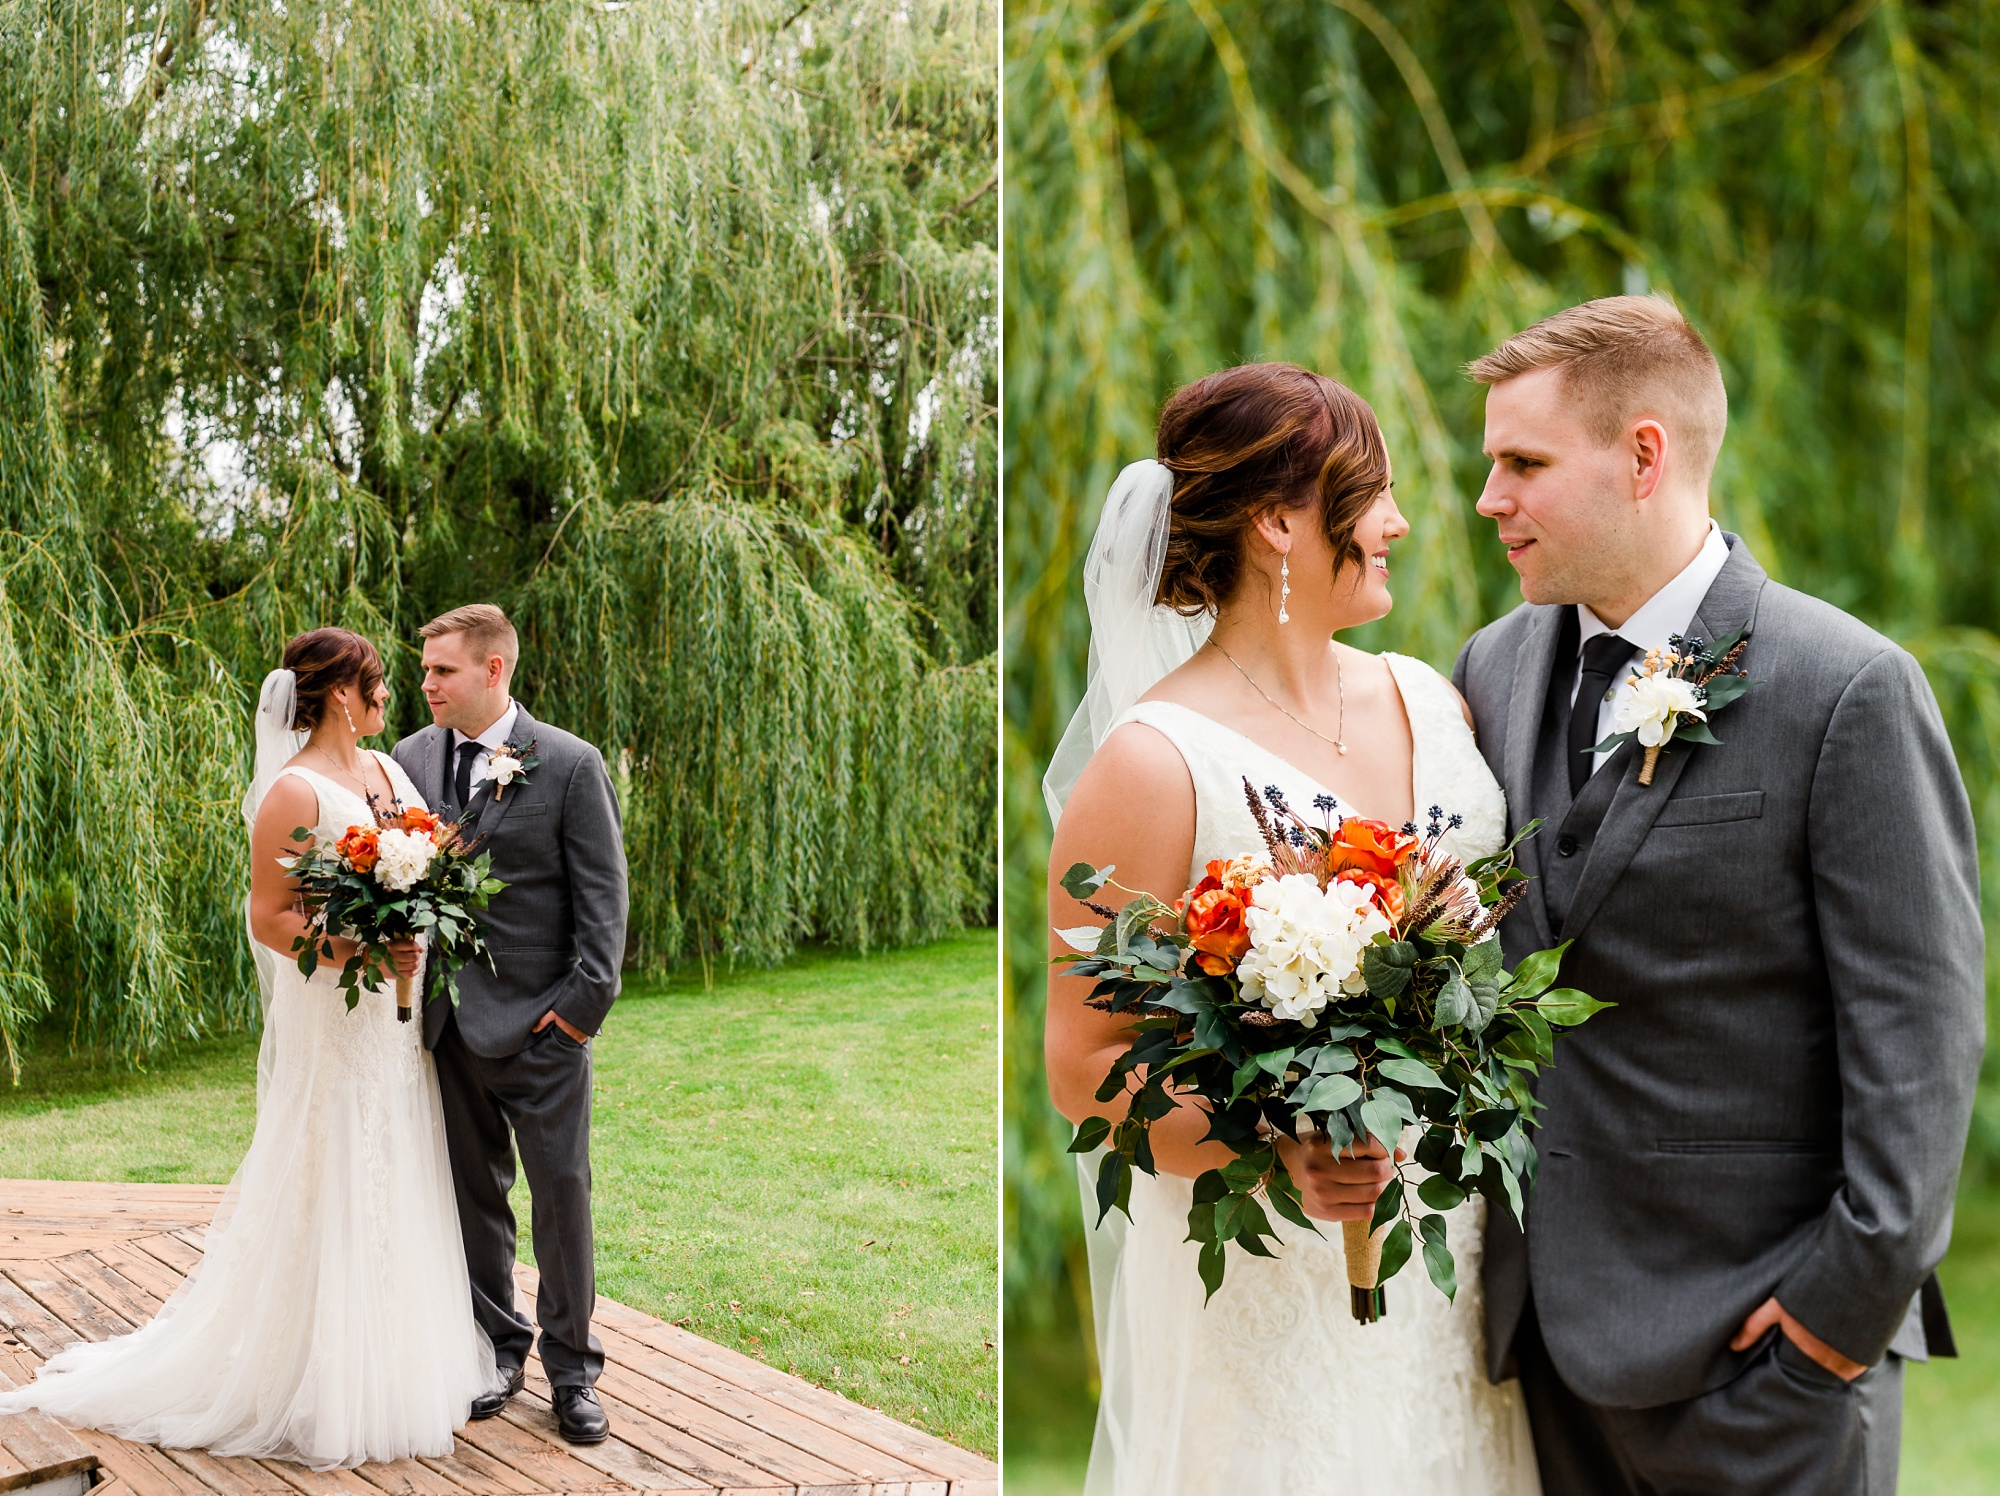 Amber Langerud Photography_Moohread, Outdoor, Barn Wedding at A Friends House_7052.jpg